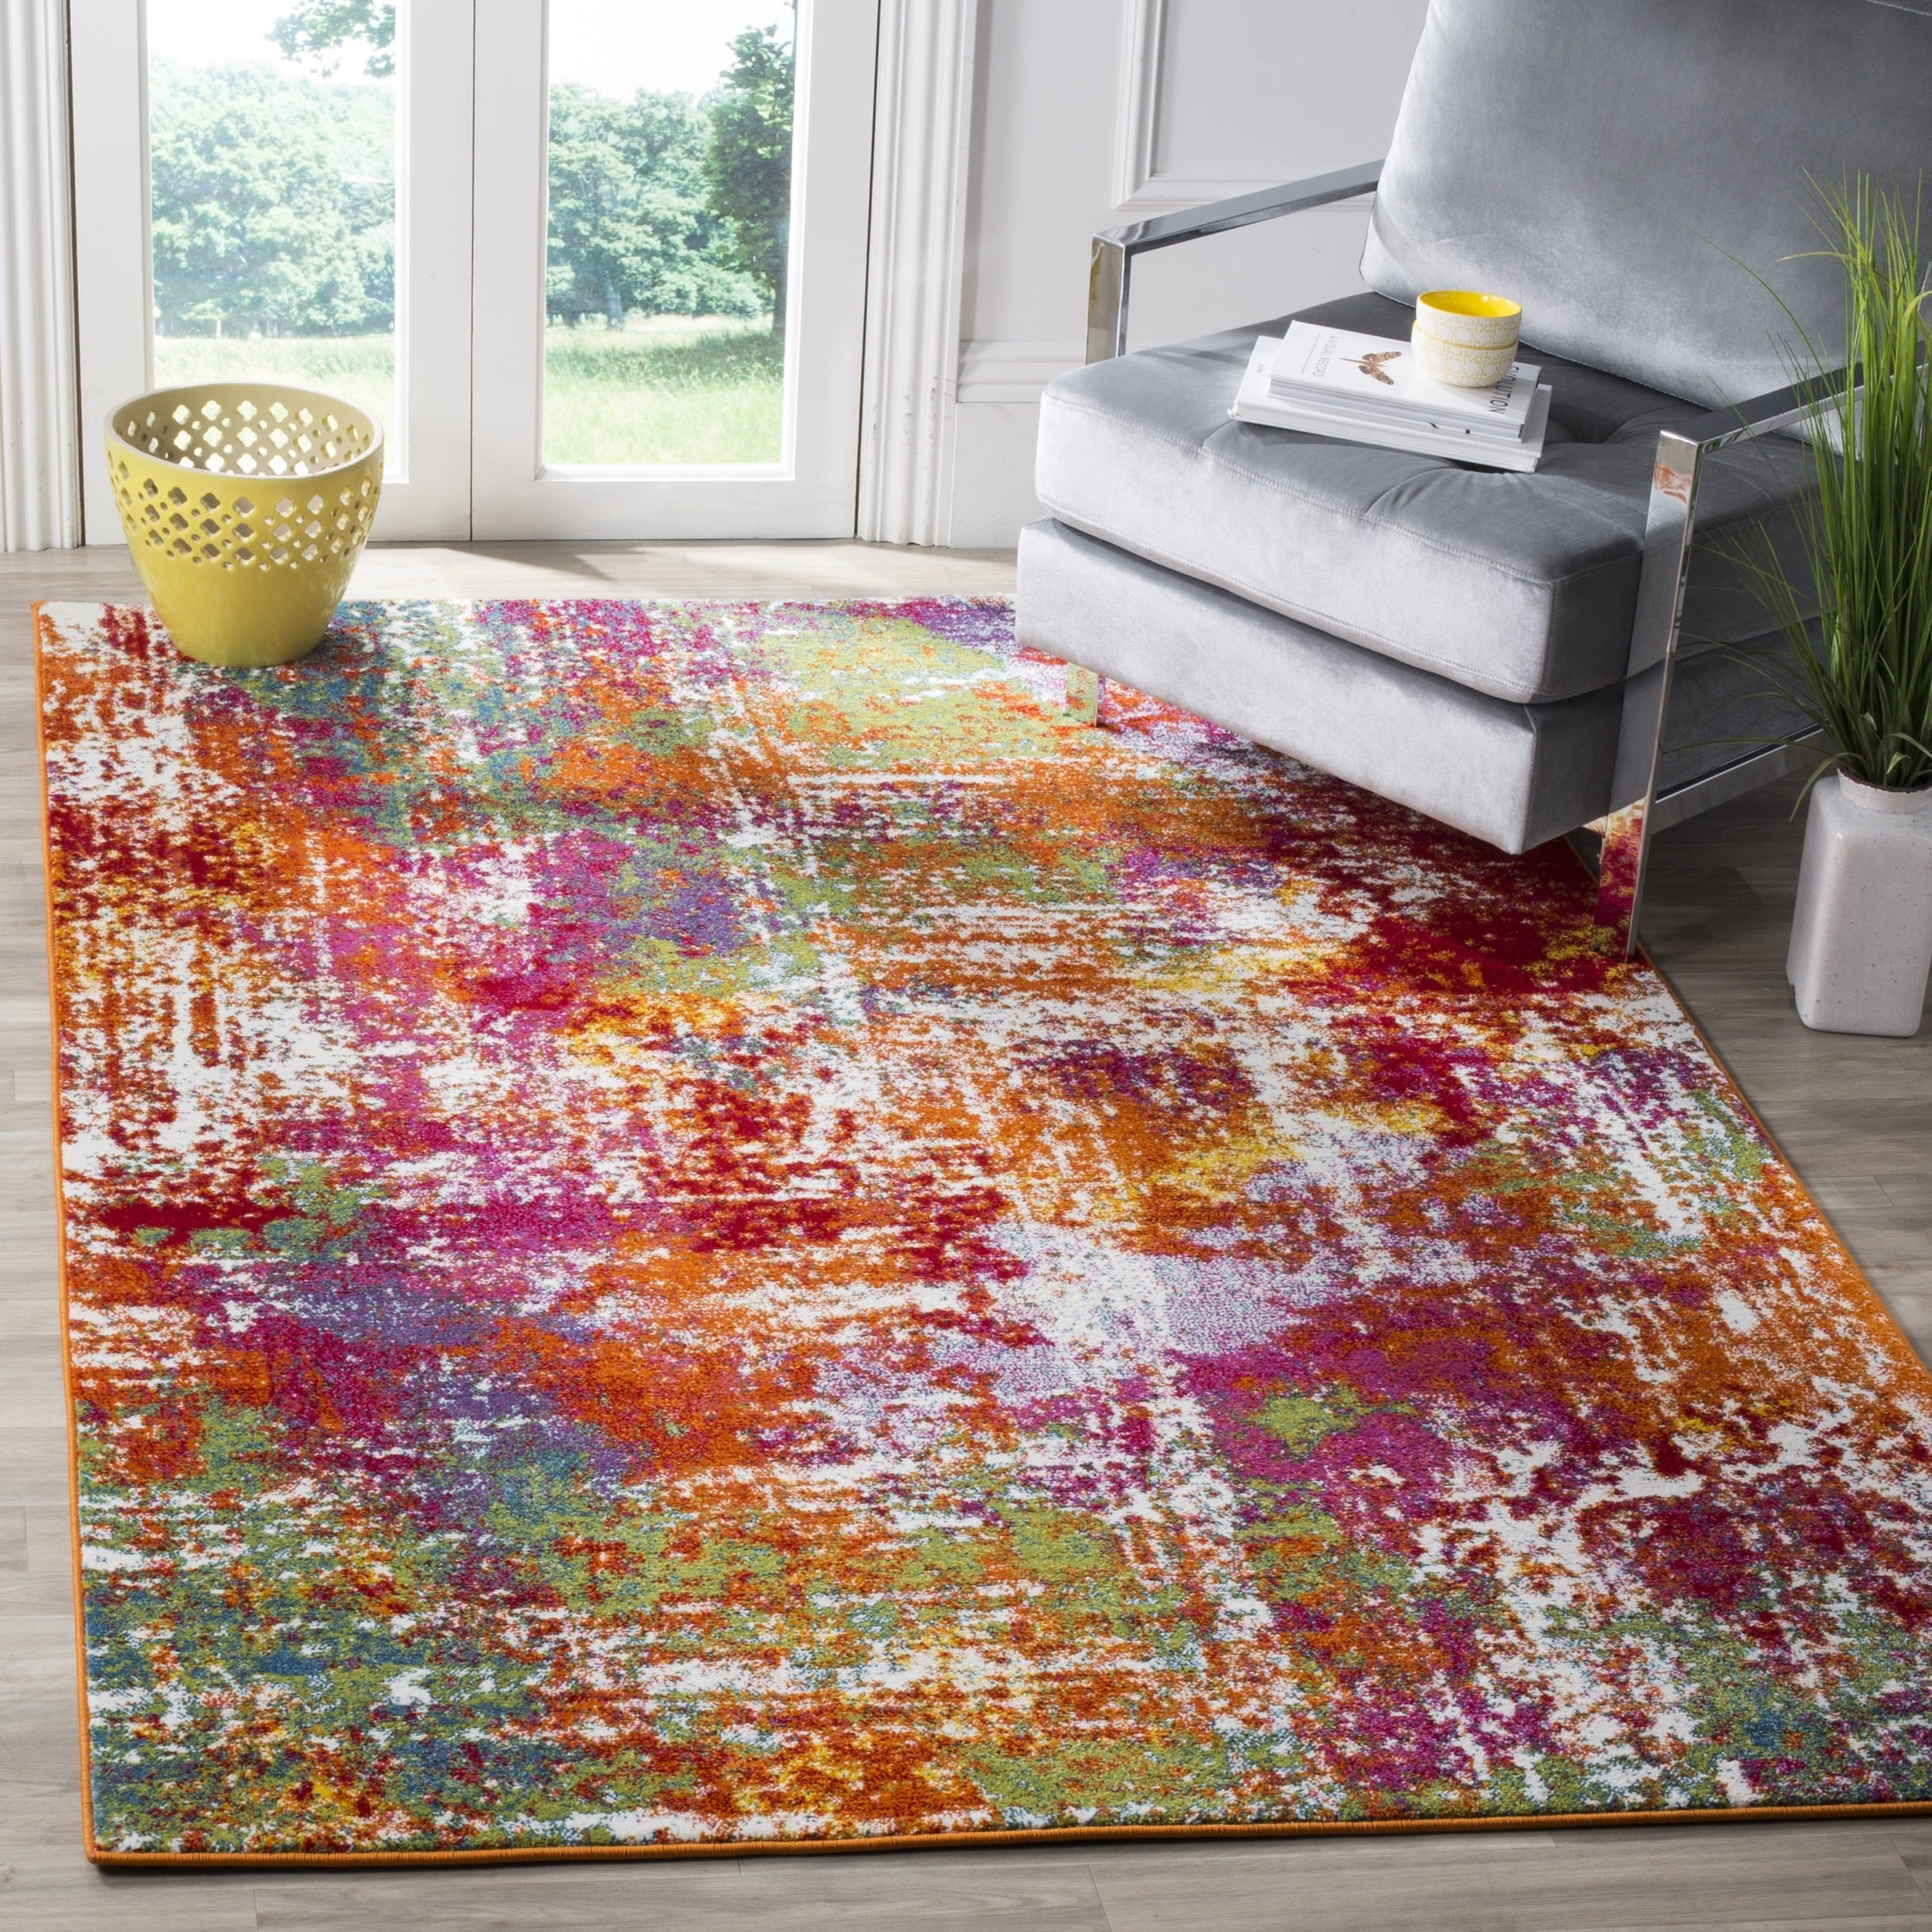 Safavieh Watercolor 8' X 10' Rug in Orange and Green PartNumber: SPM9762808322